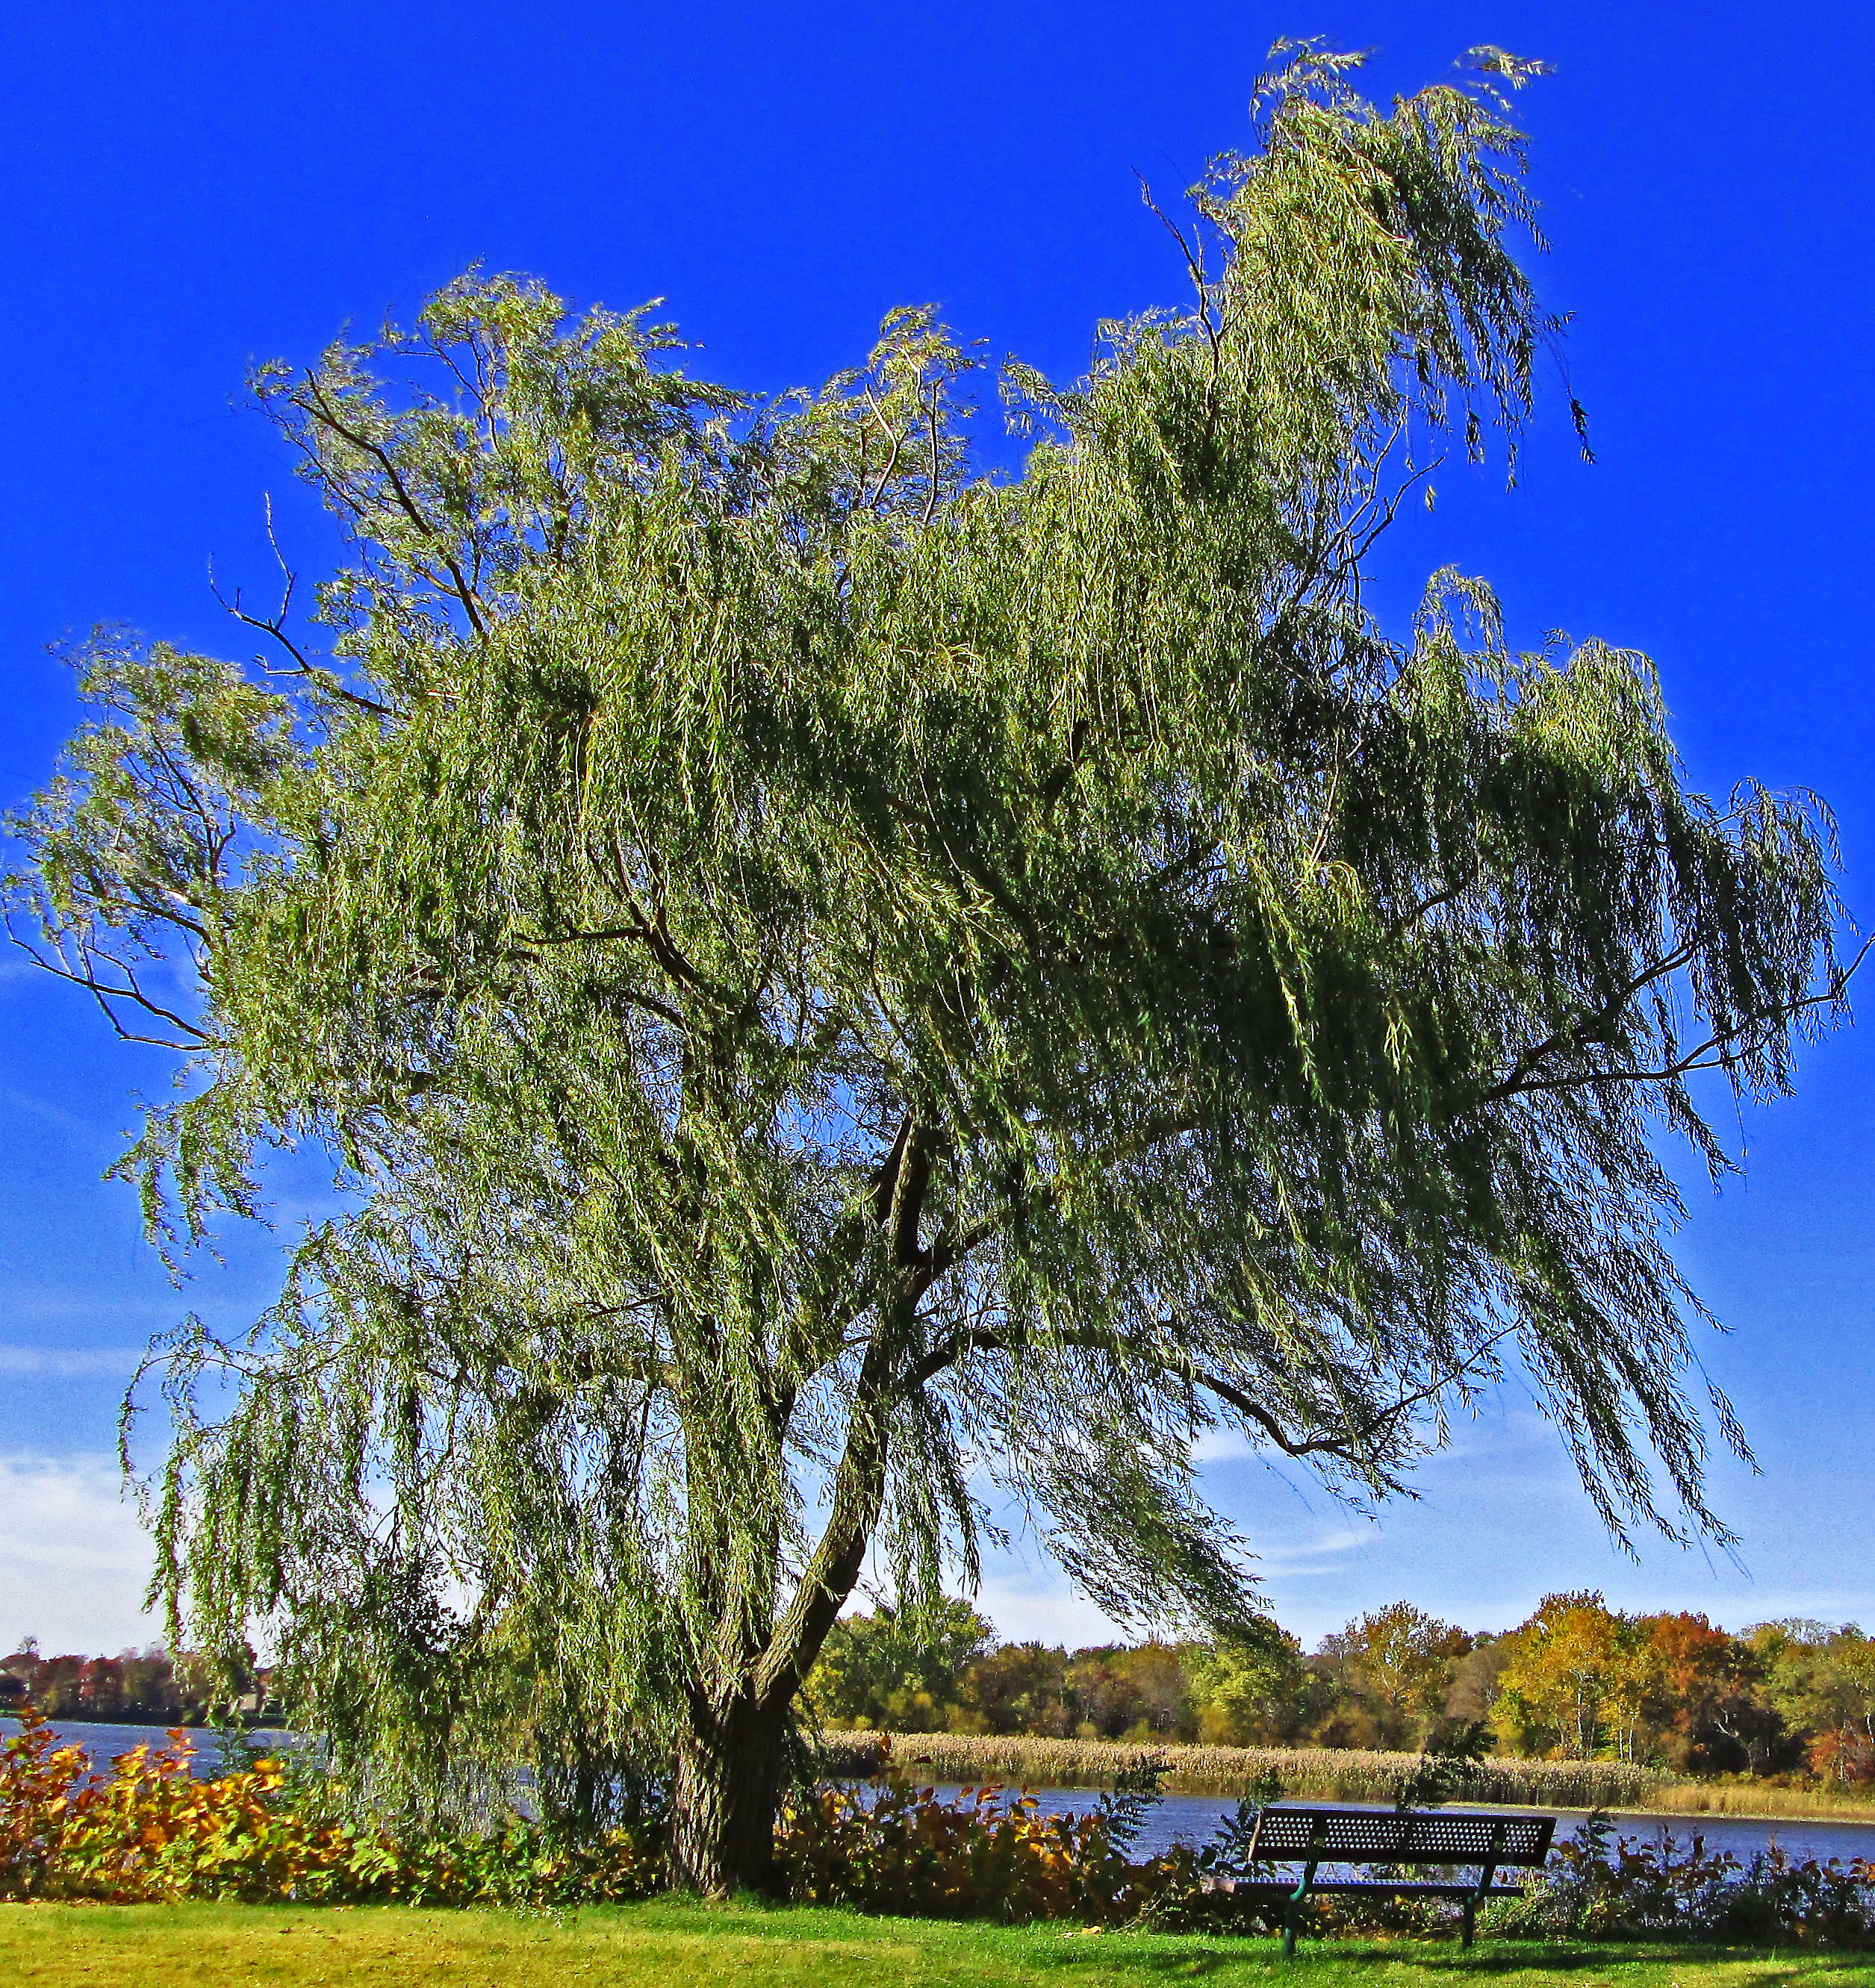 Swaying Willow on The Banks Of The Delaware